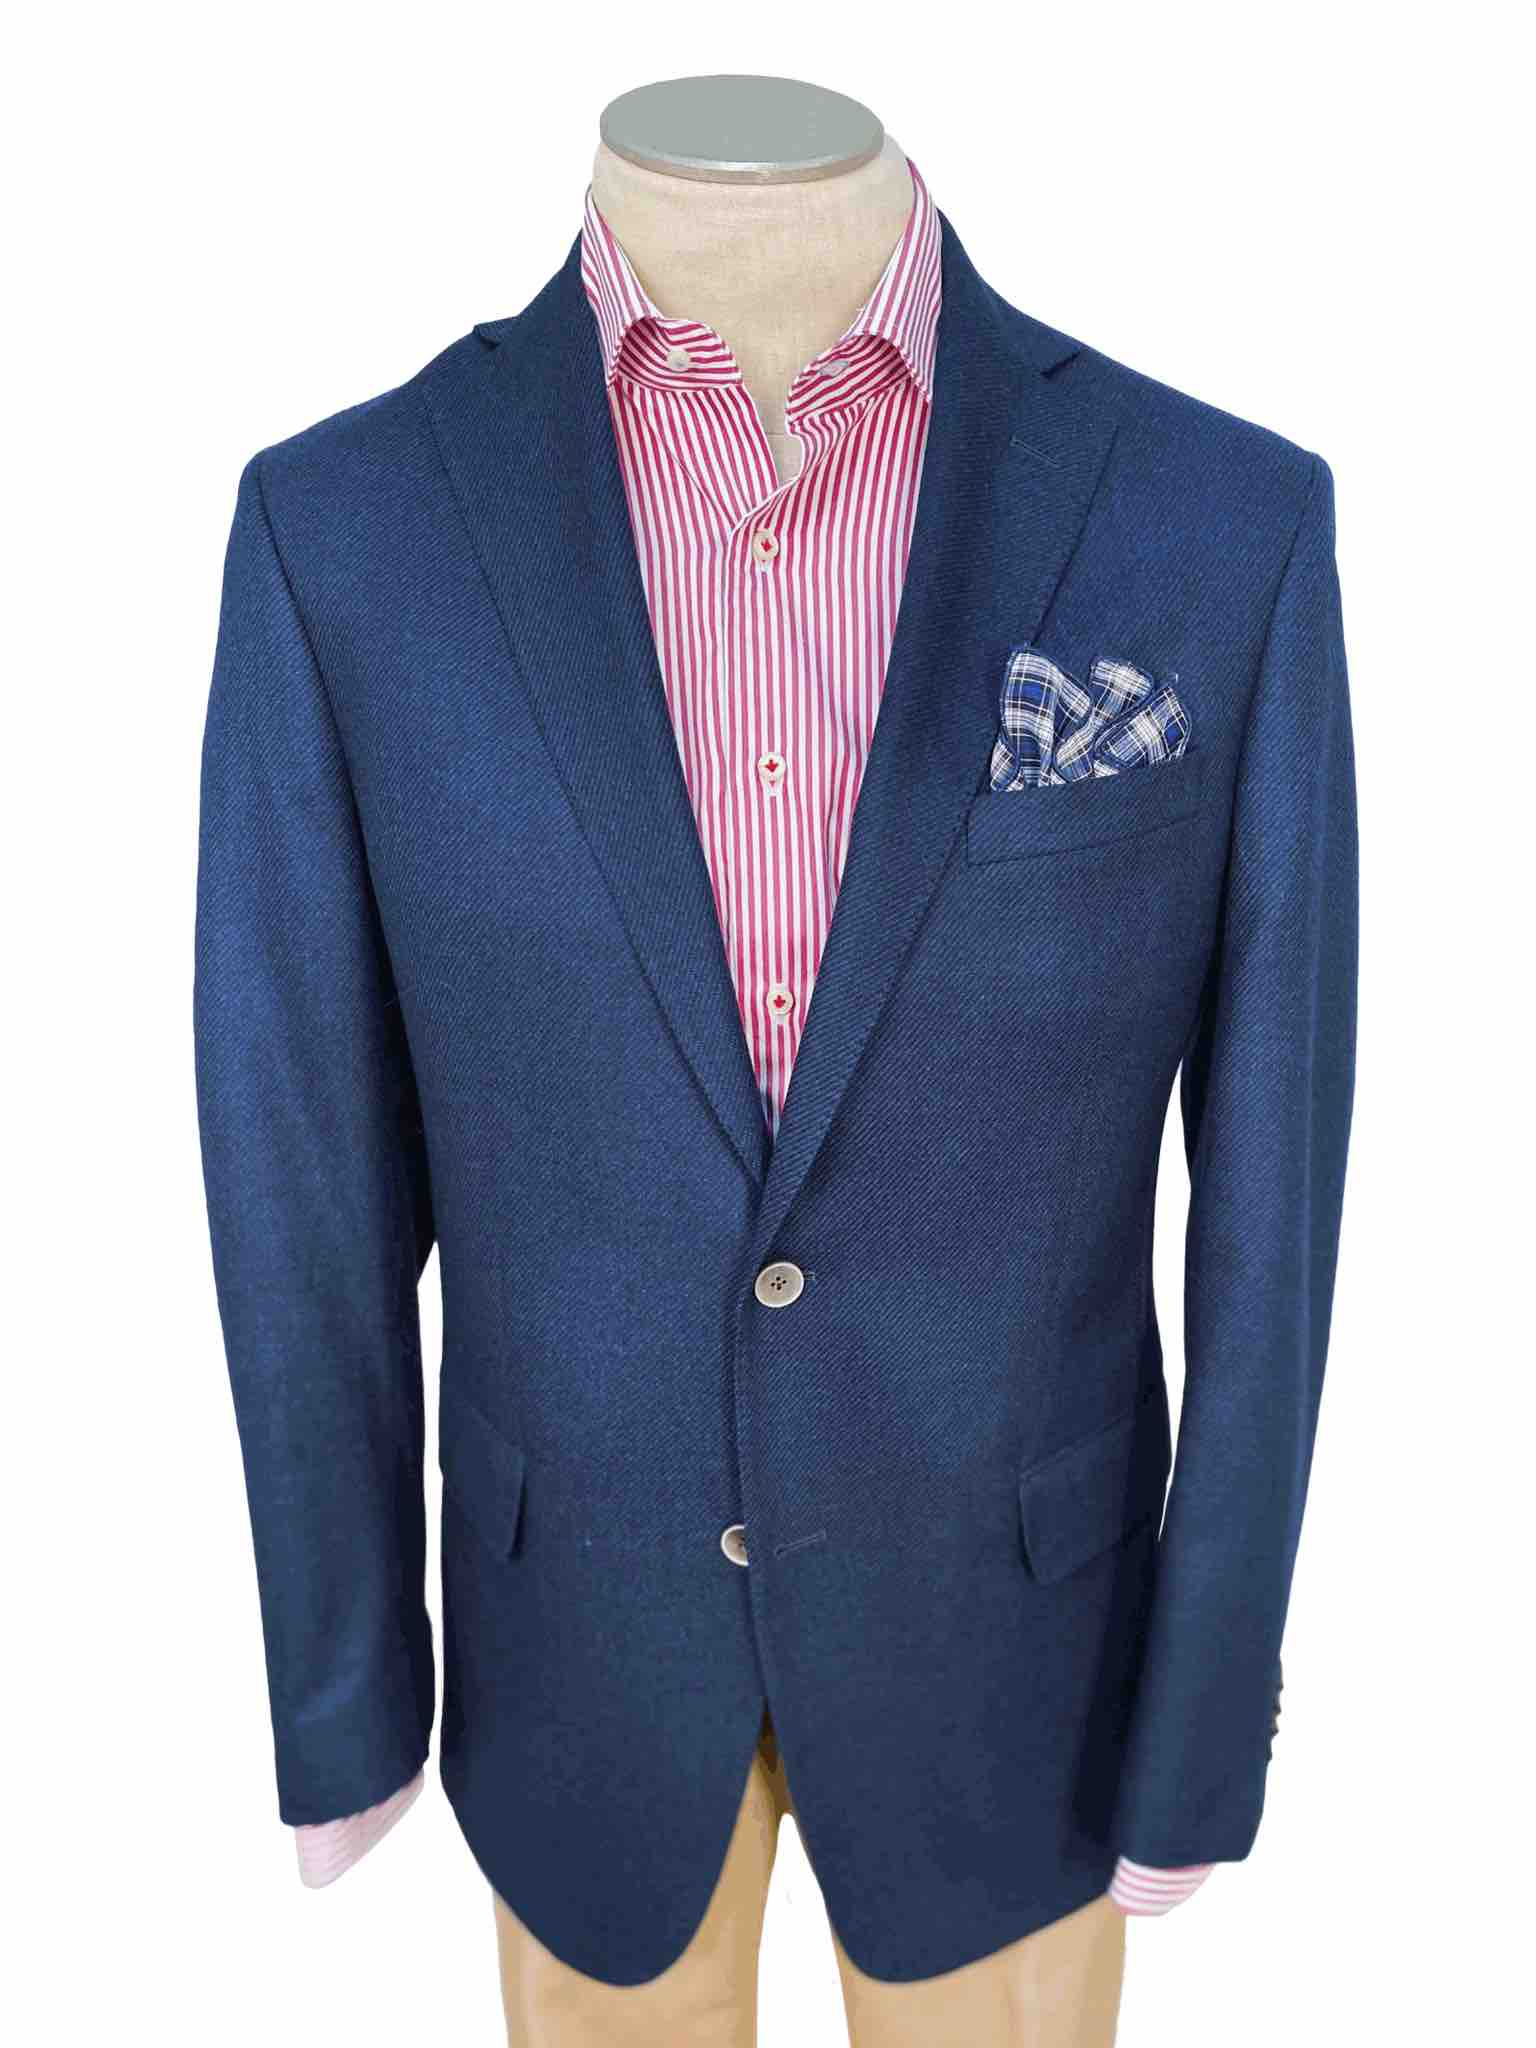 Men's Sport Coat Modern Cut - BLUE - 70/30 WOOL/AIRWOOL